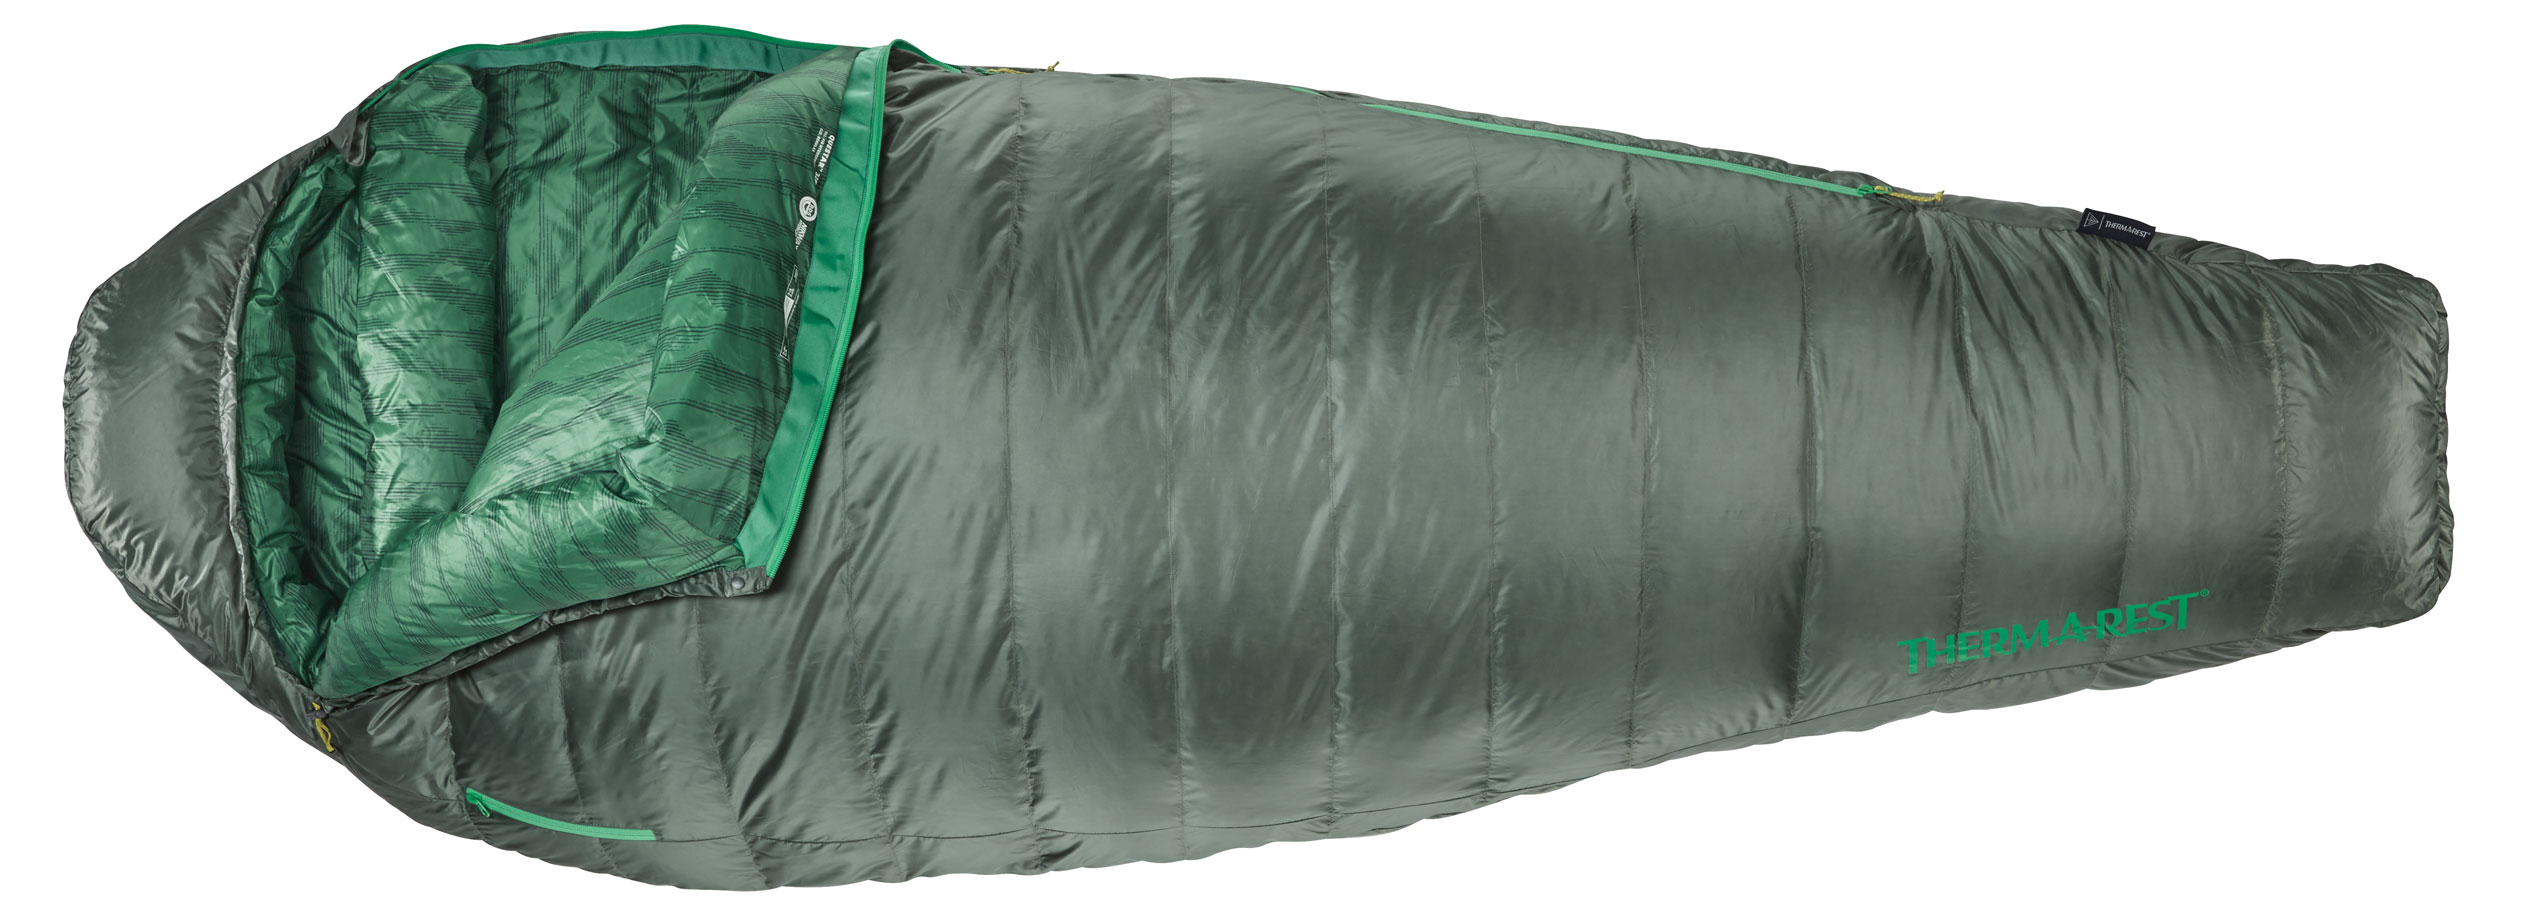 Therm-a-Rest Questar 32 sleeping bag